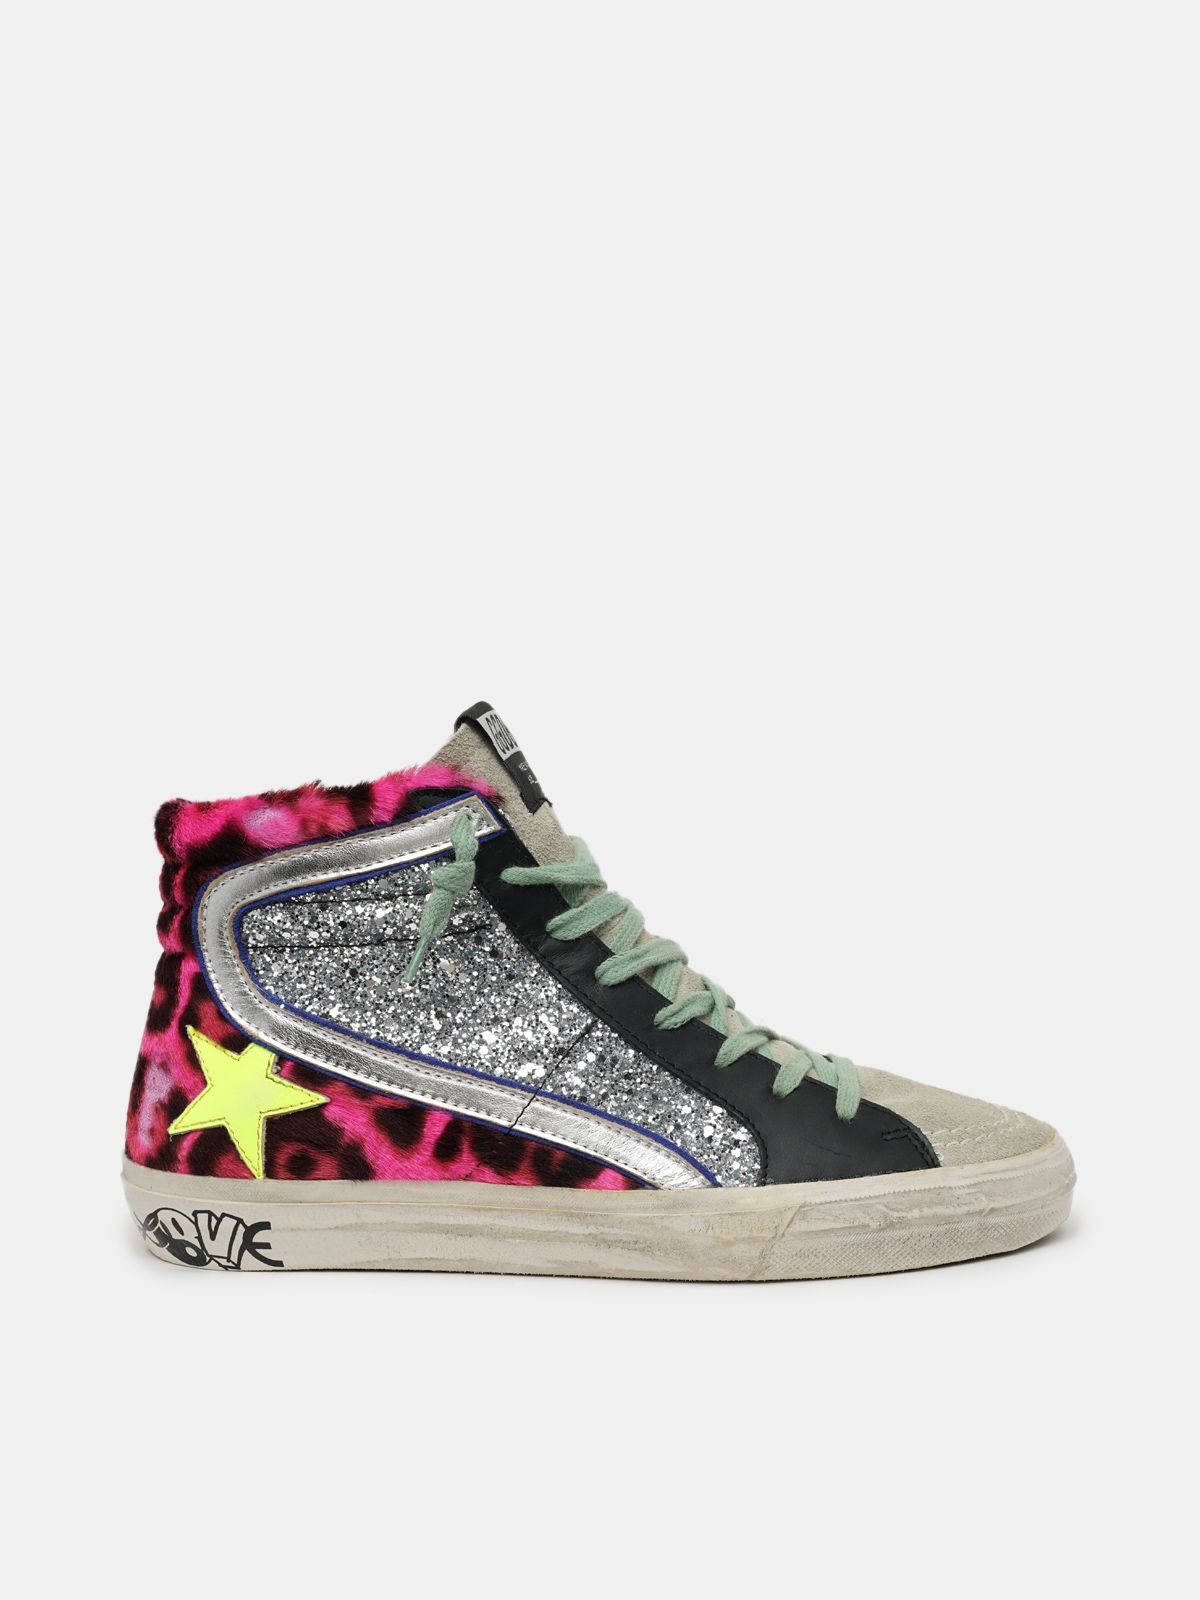 Francy sneakers with leopard-print pony skin upper and silver glitter inserts